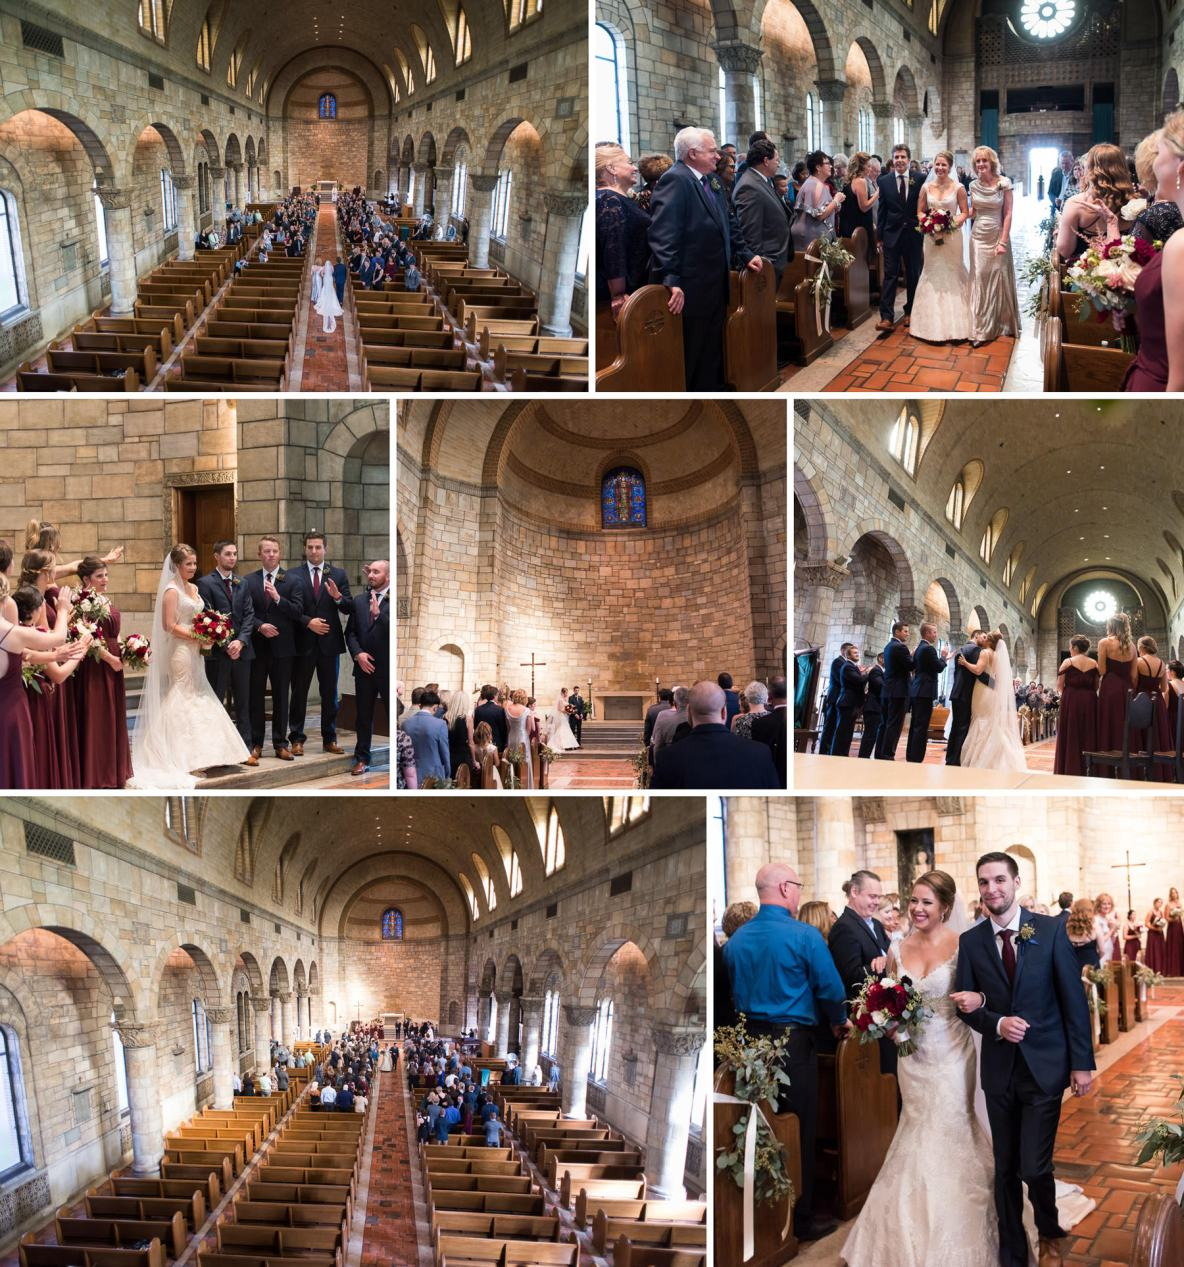 Photos of the indoor ceremony, including aisle photos.